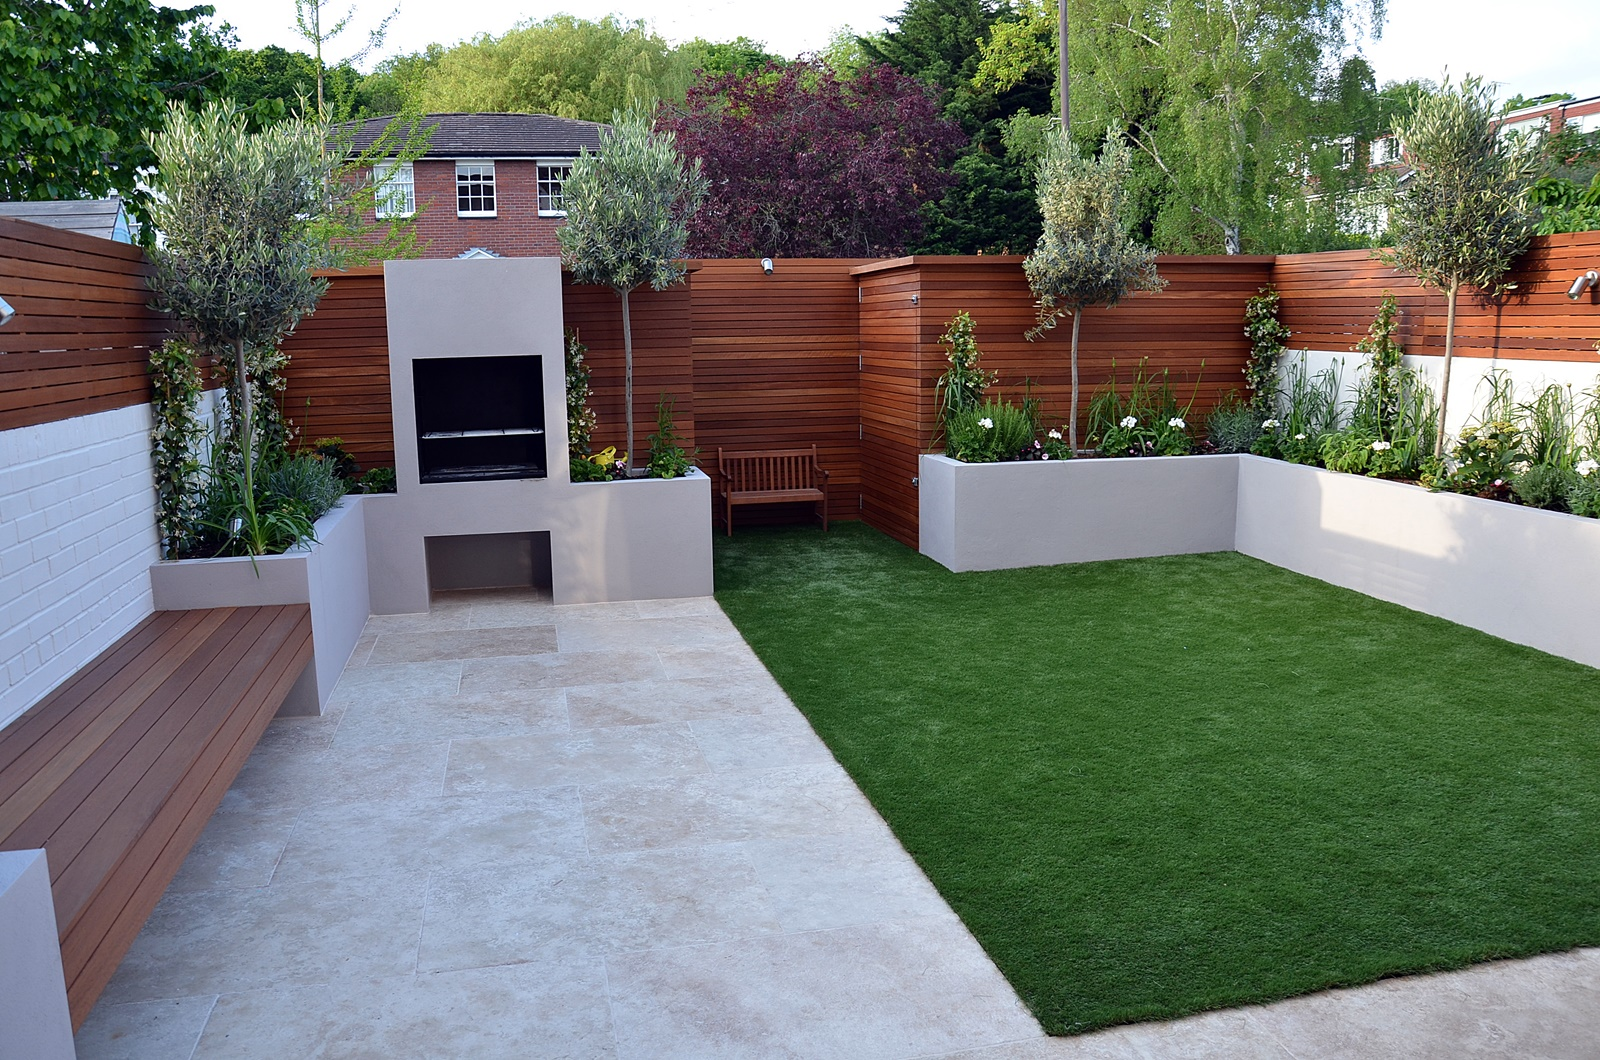 Modern garden design fulham chelsea clapham battersea for Contemporary garden ideas